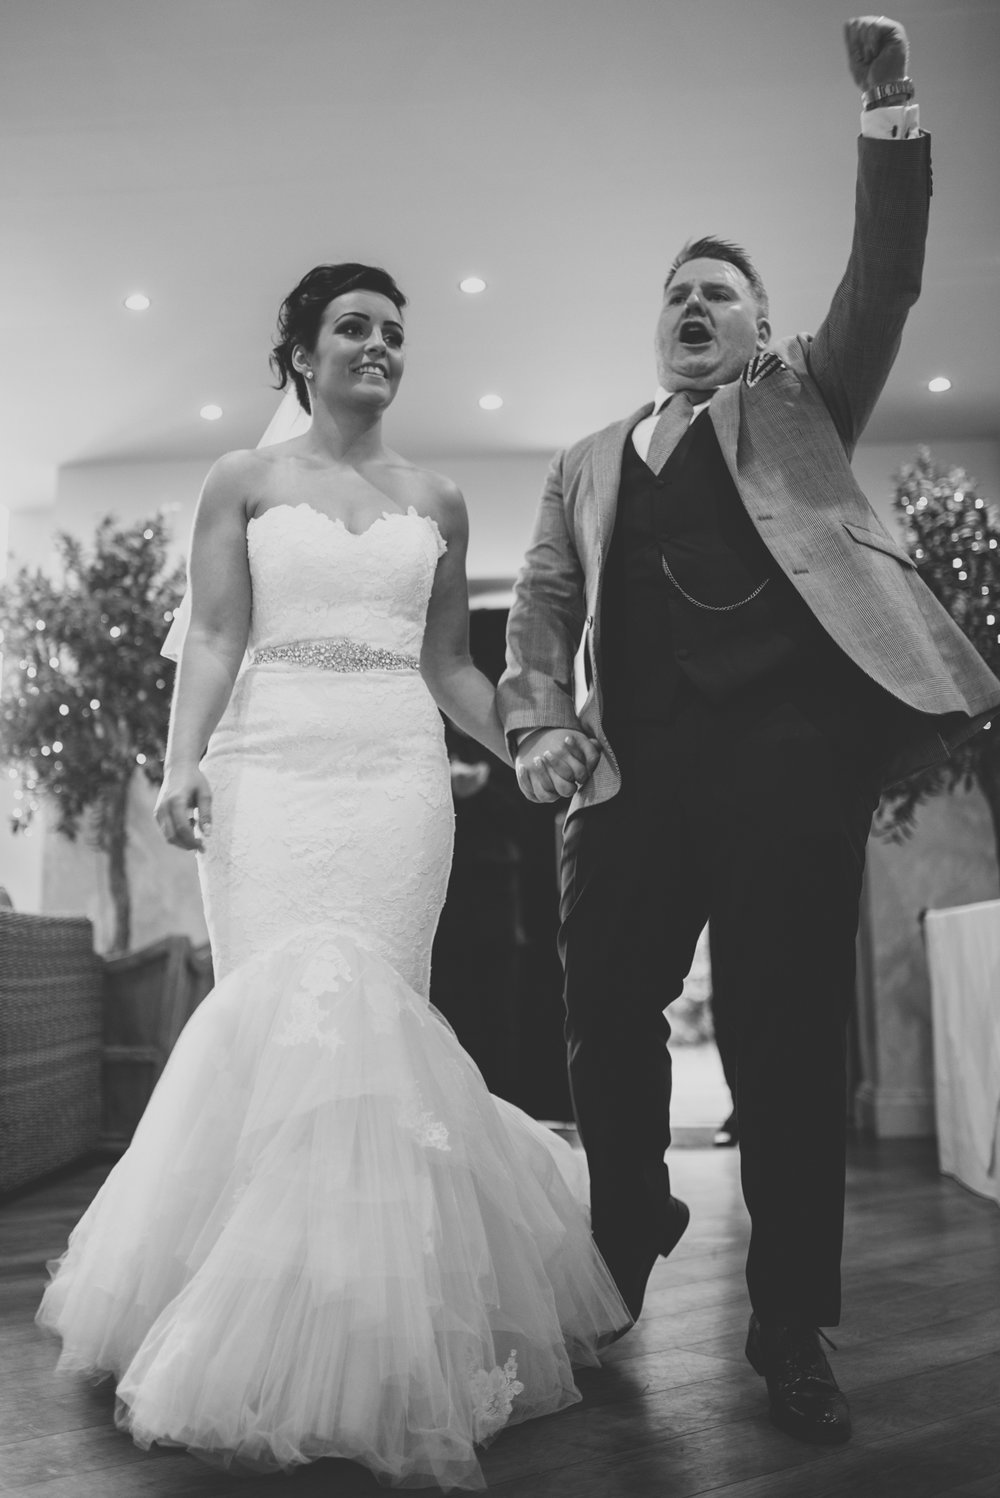 Bride and groom walk down the aisle together